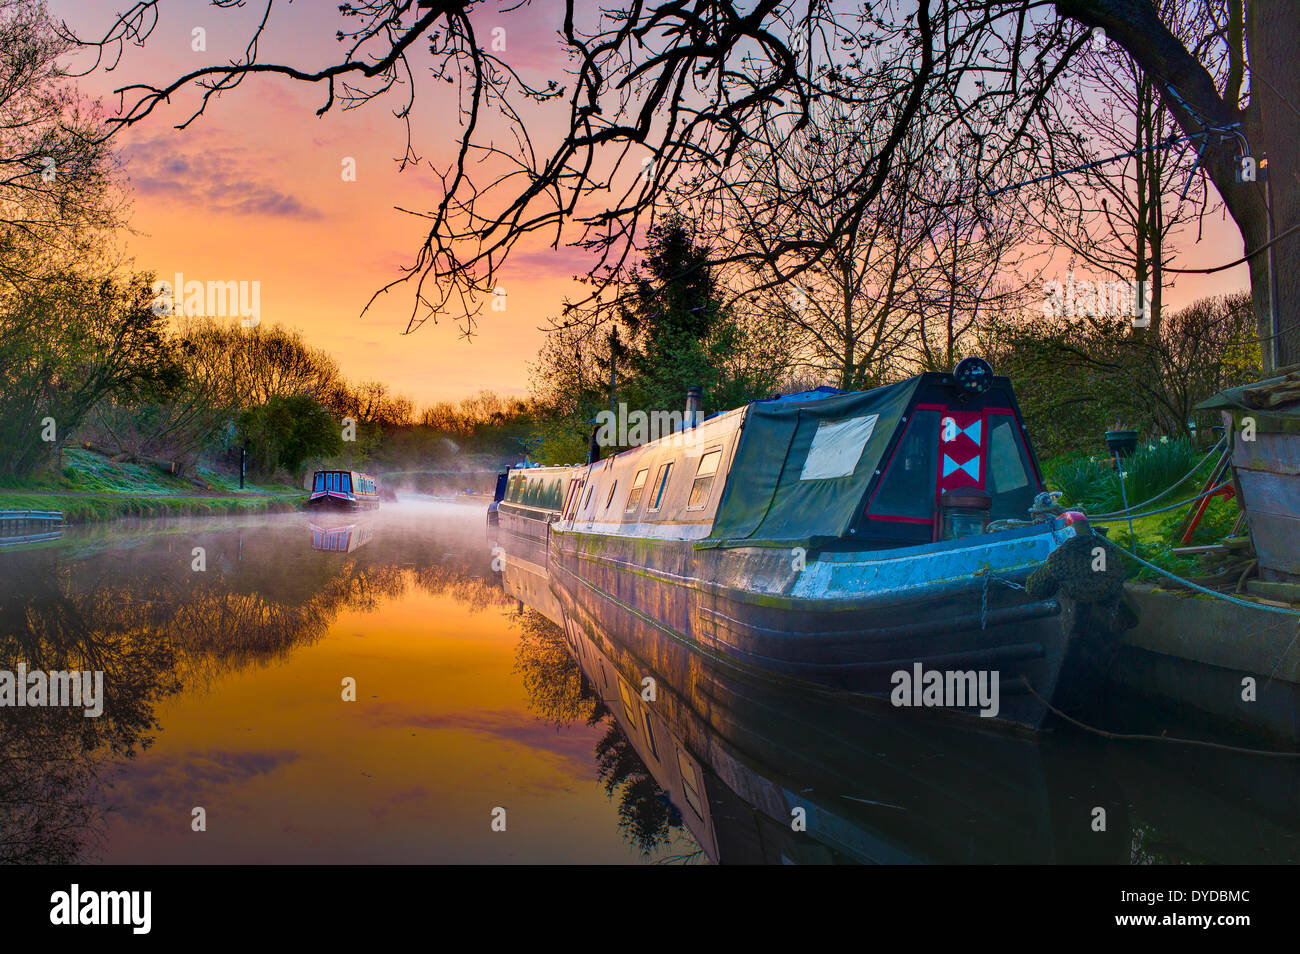 Tranquil reflections and morning mist in the first rays of dawn on the Grand Union canal with several narrow boats. - Stock Image